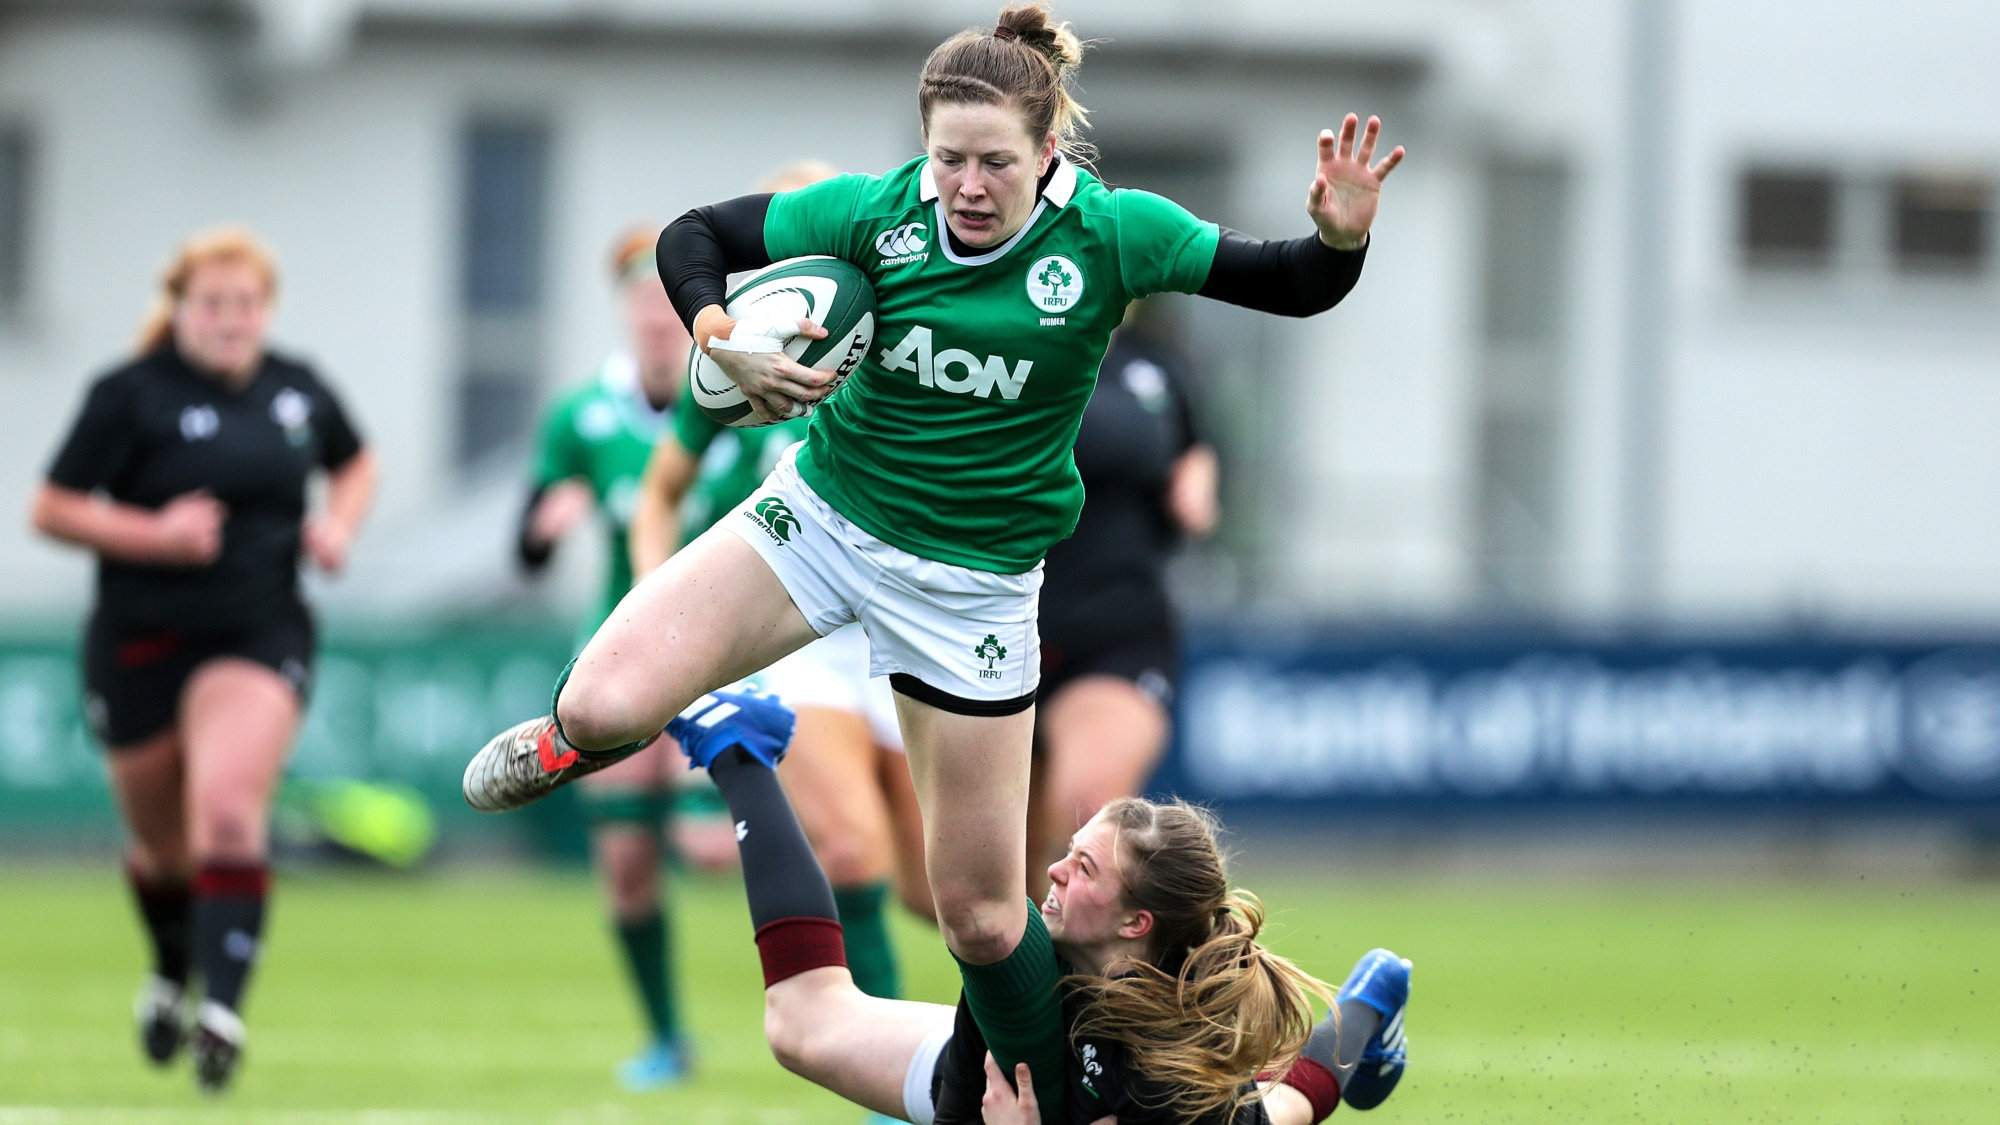 Busy weekend of Rugby for Women's Six Nations stars